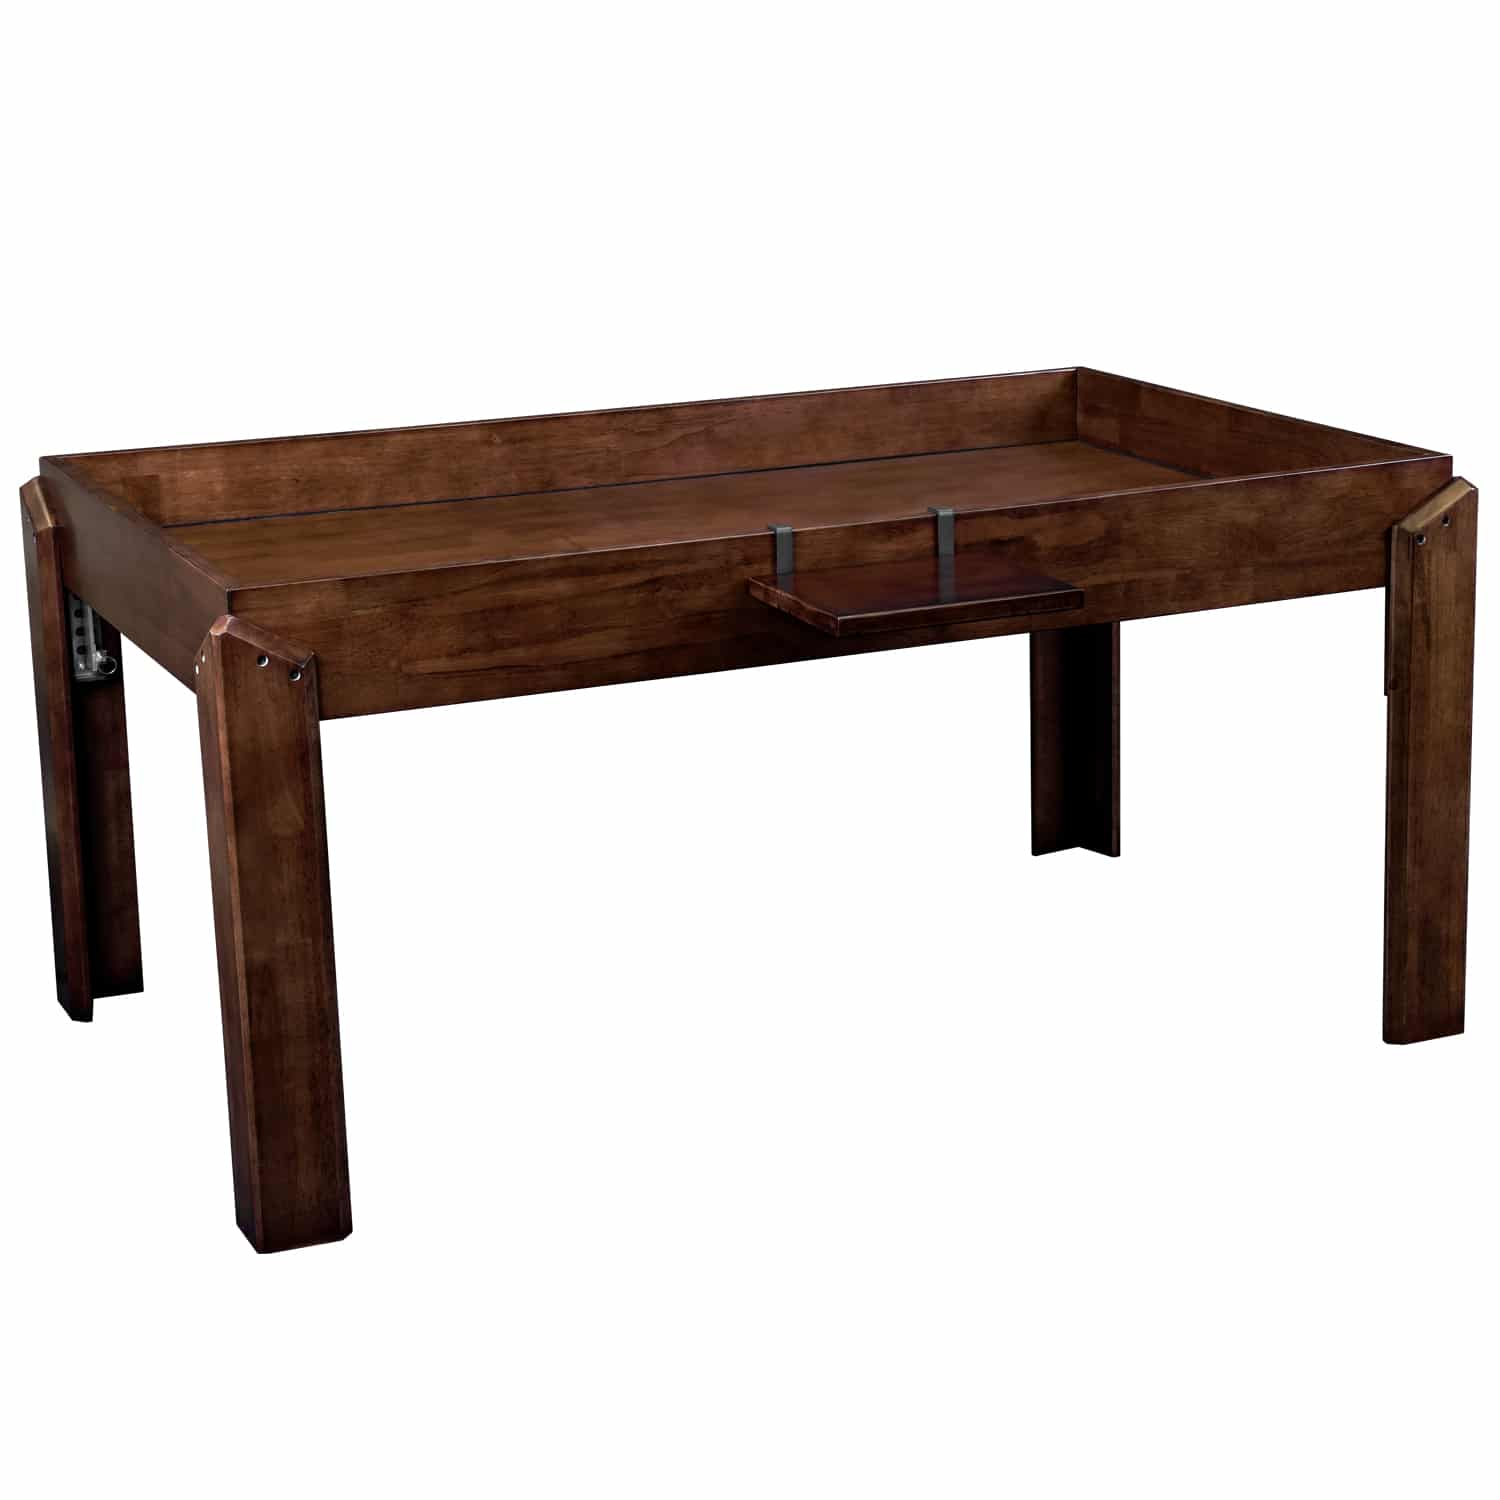 Nilo Master Table, Game Table, Gaming Table, Board Game Table, Puzzle Table